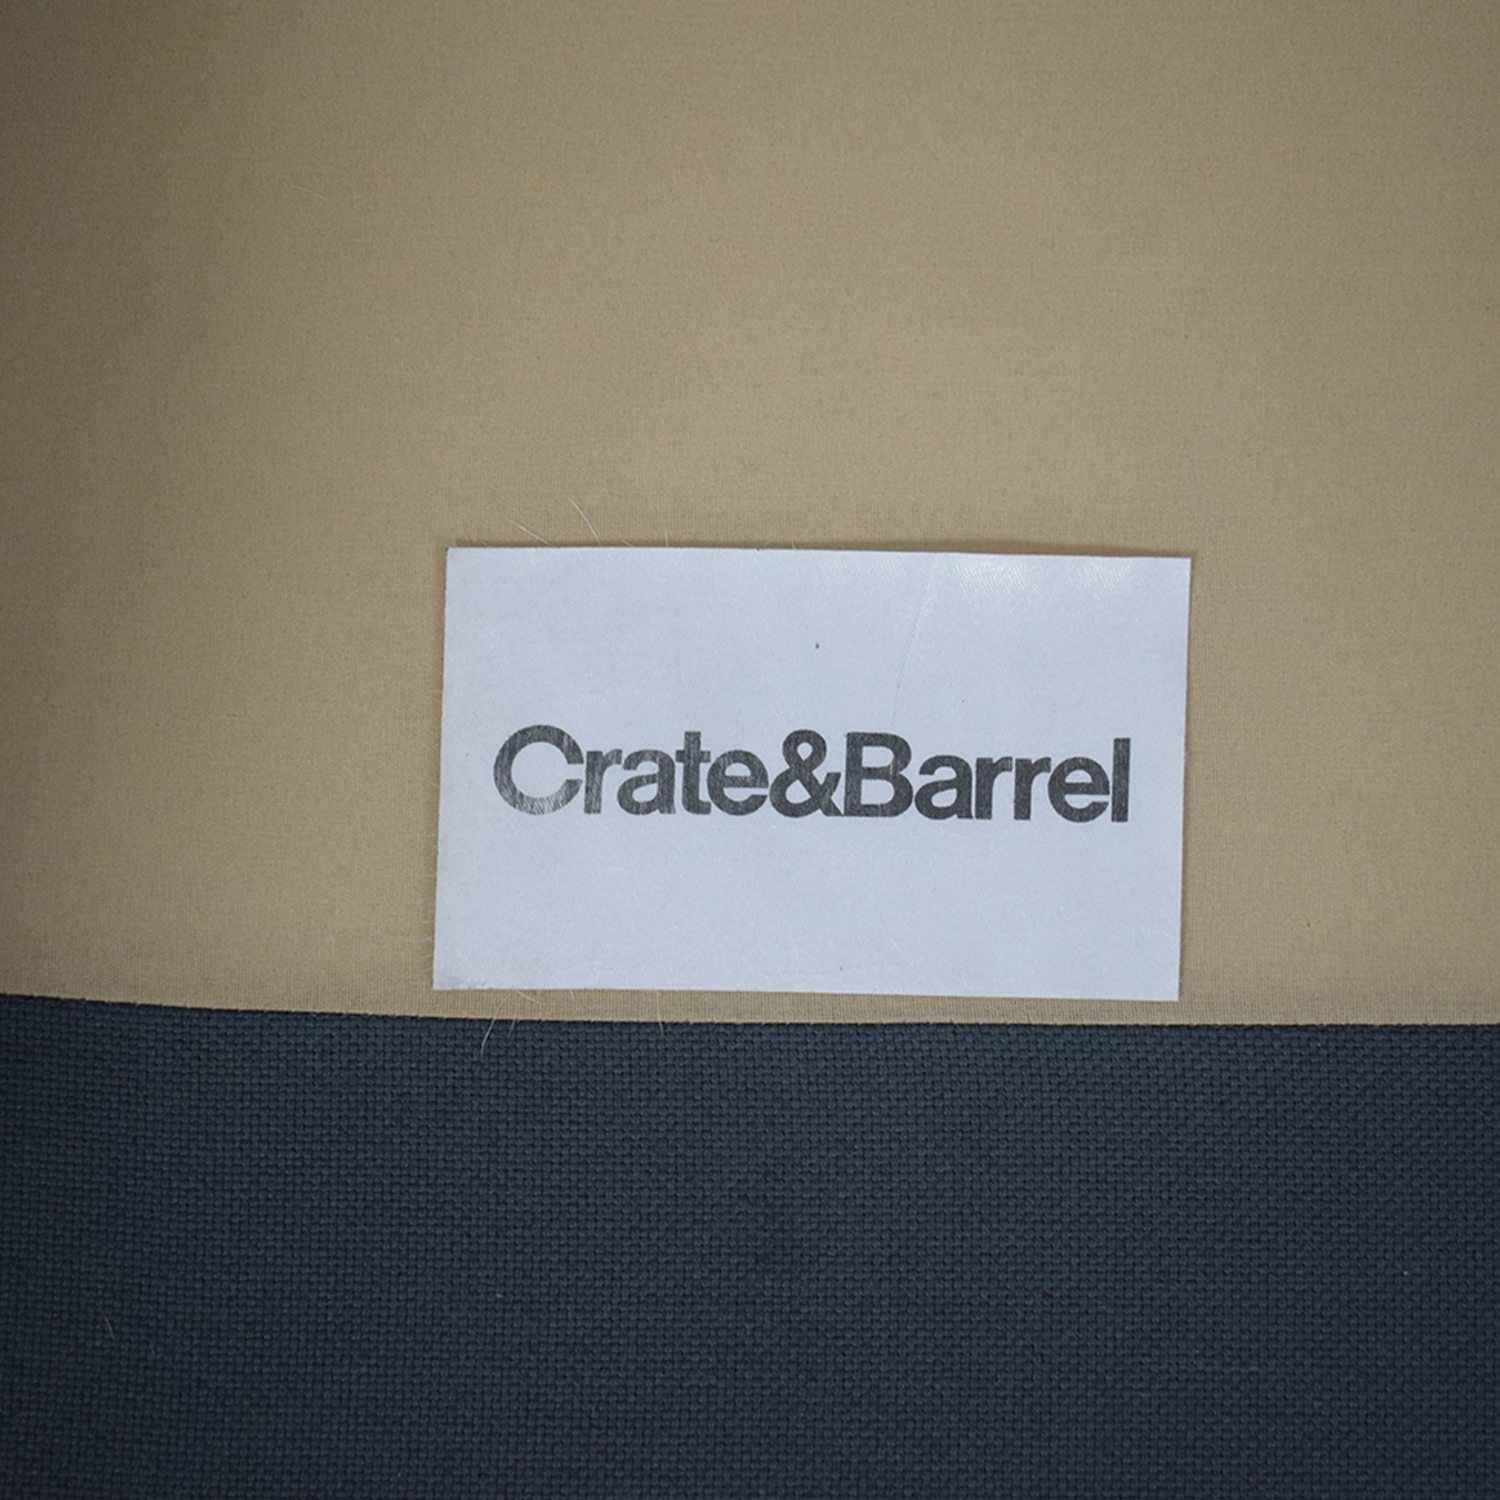 Crate & Barrel Crate & Barrel Montclair Apartment Sofa dimensions